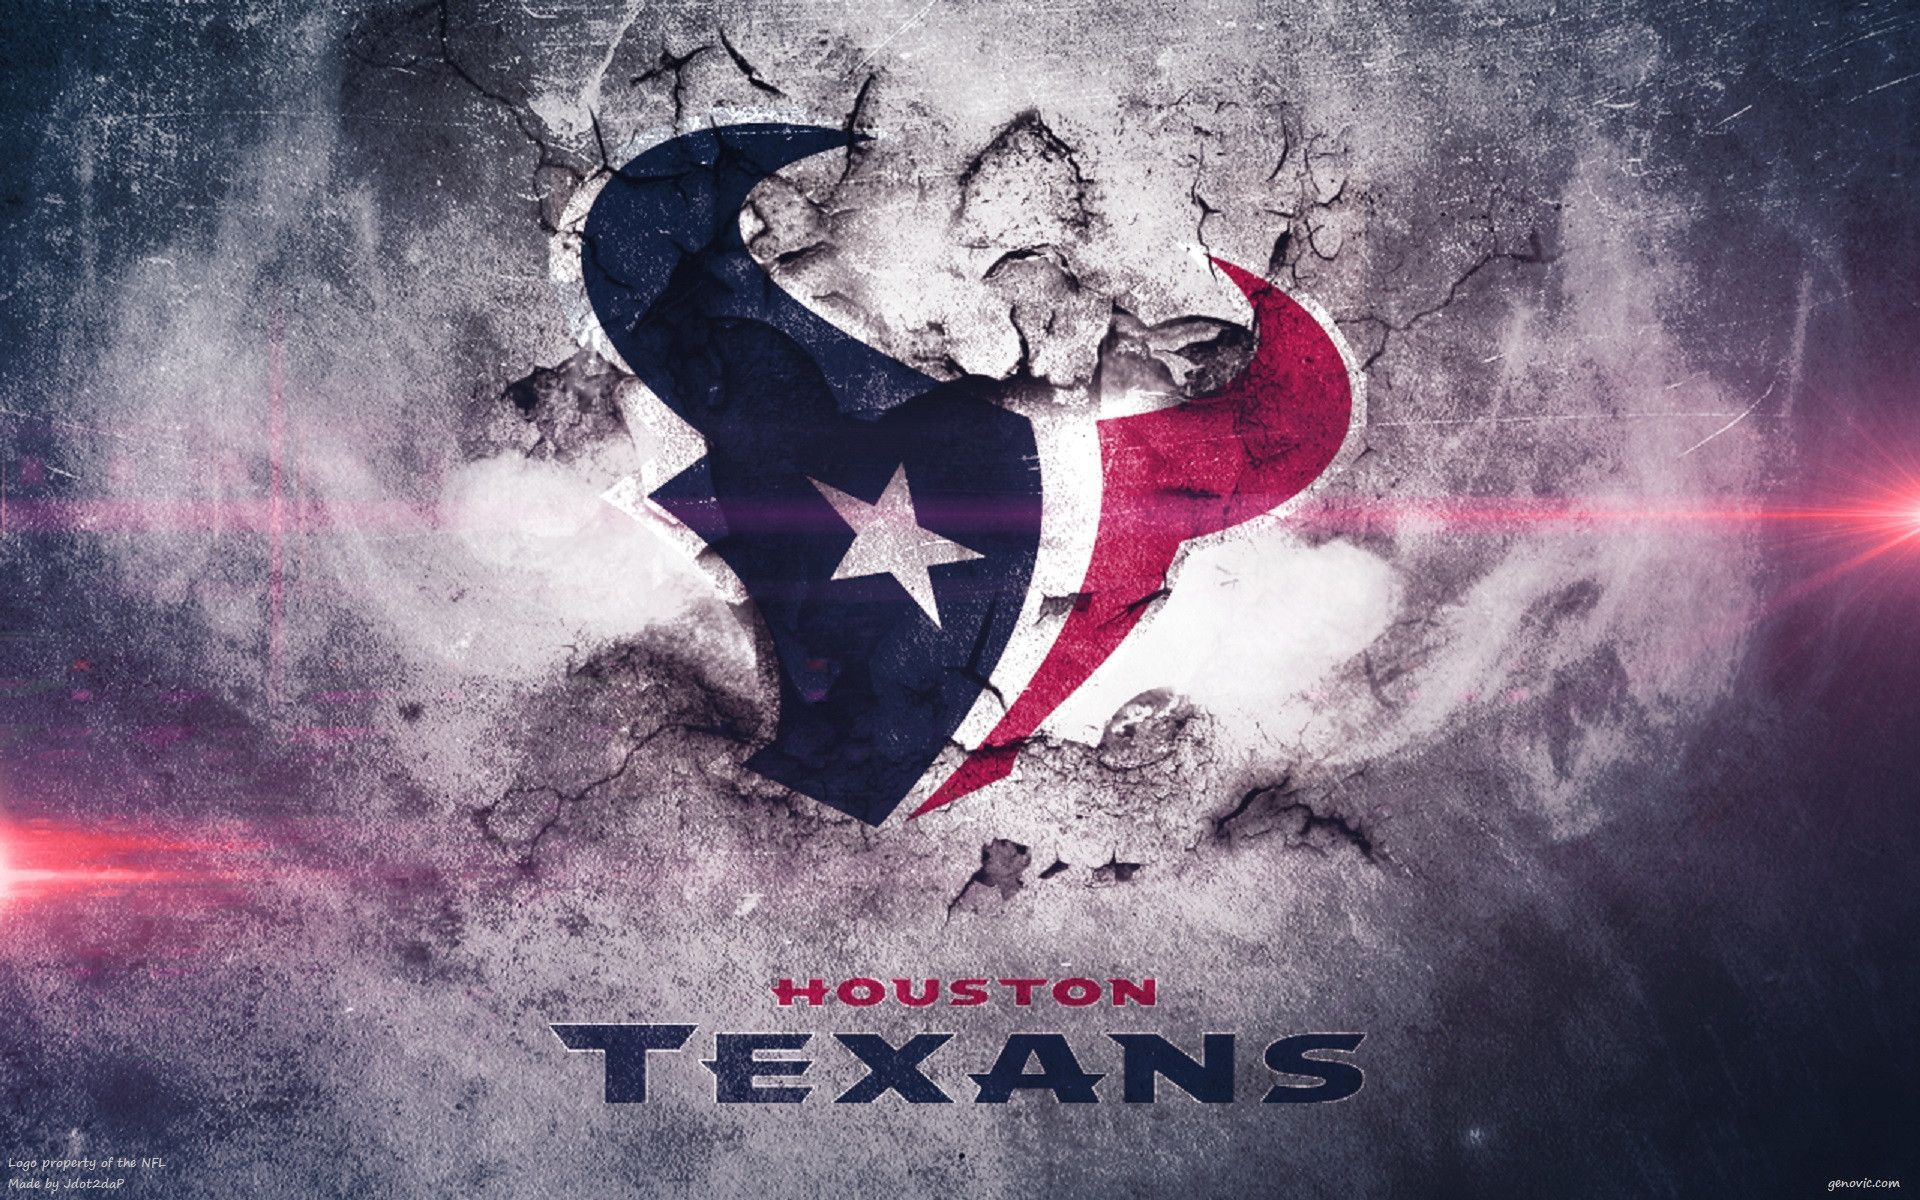 Houston Texans Wallpaper